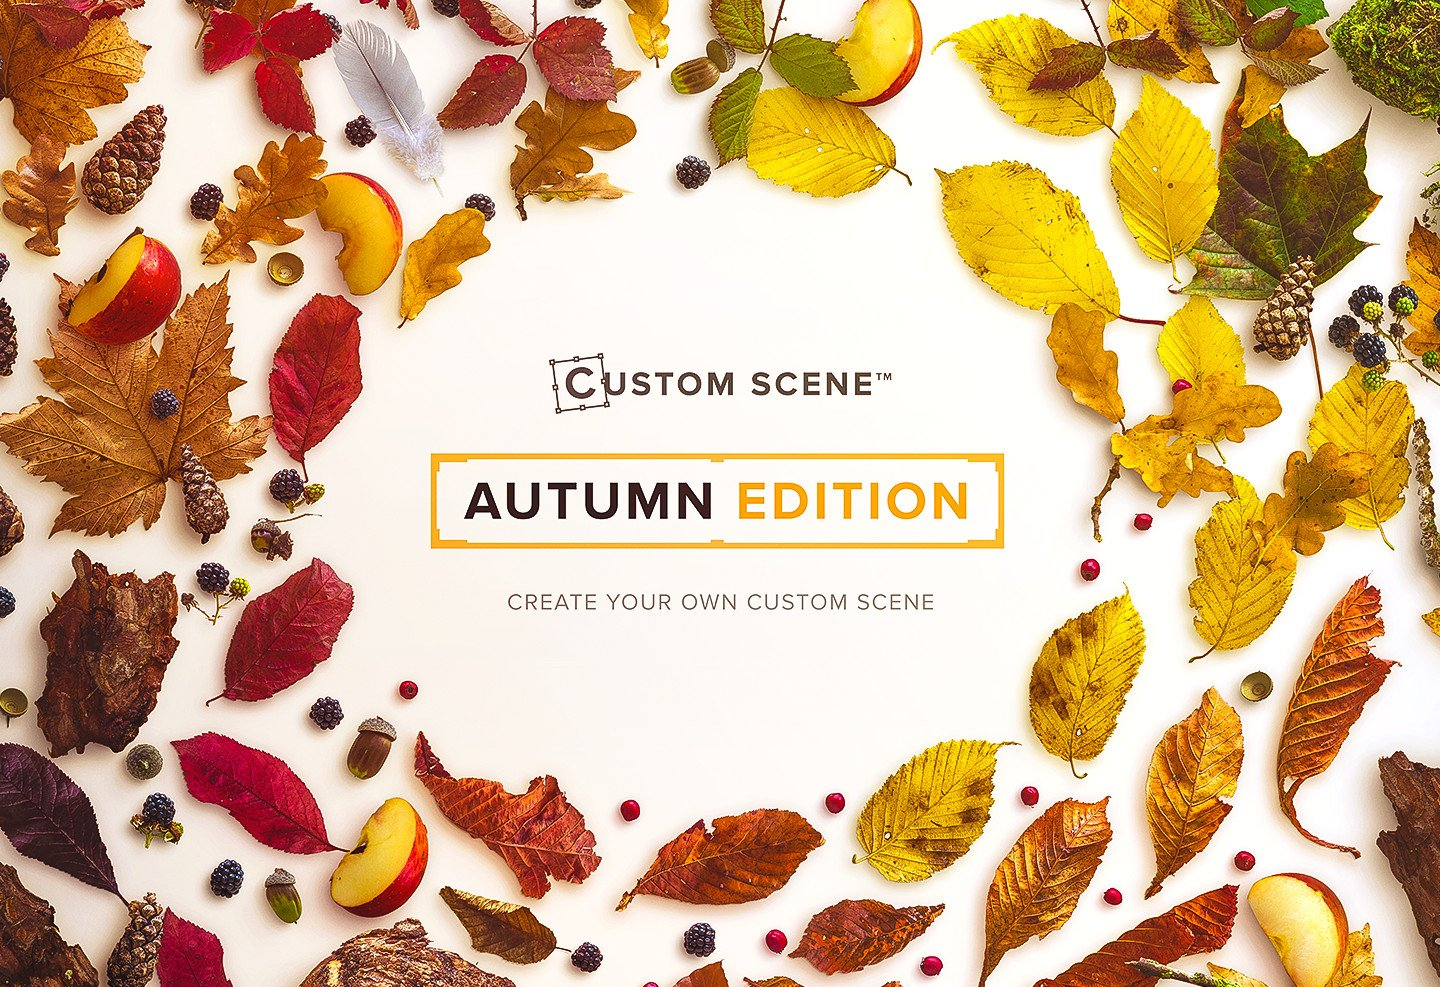 autumn edition custom scene cover